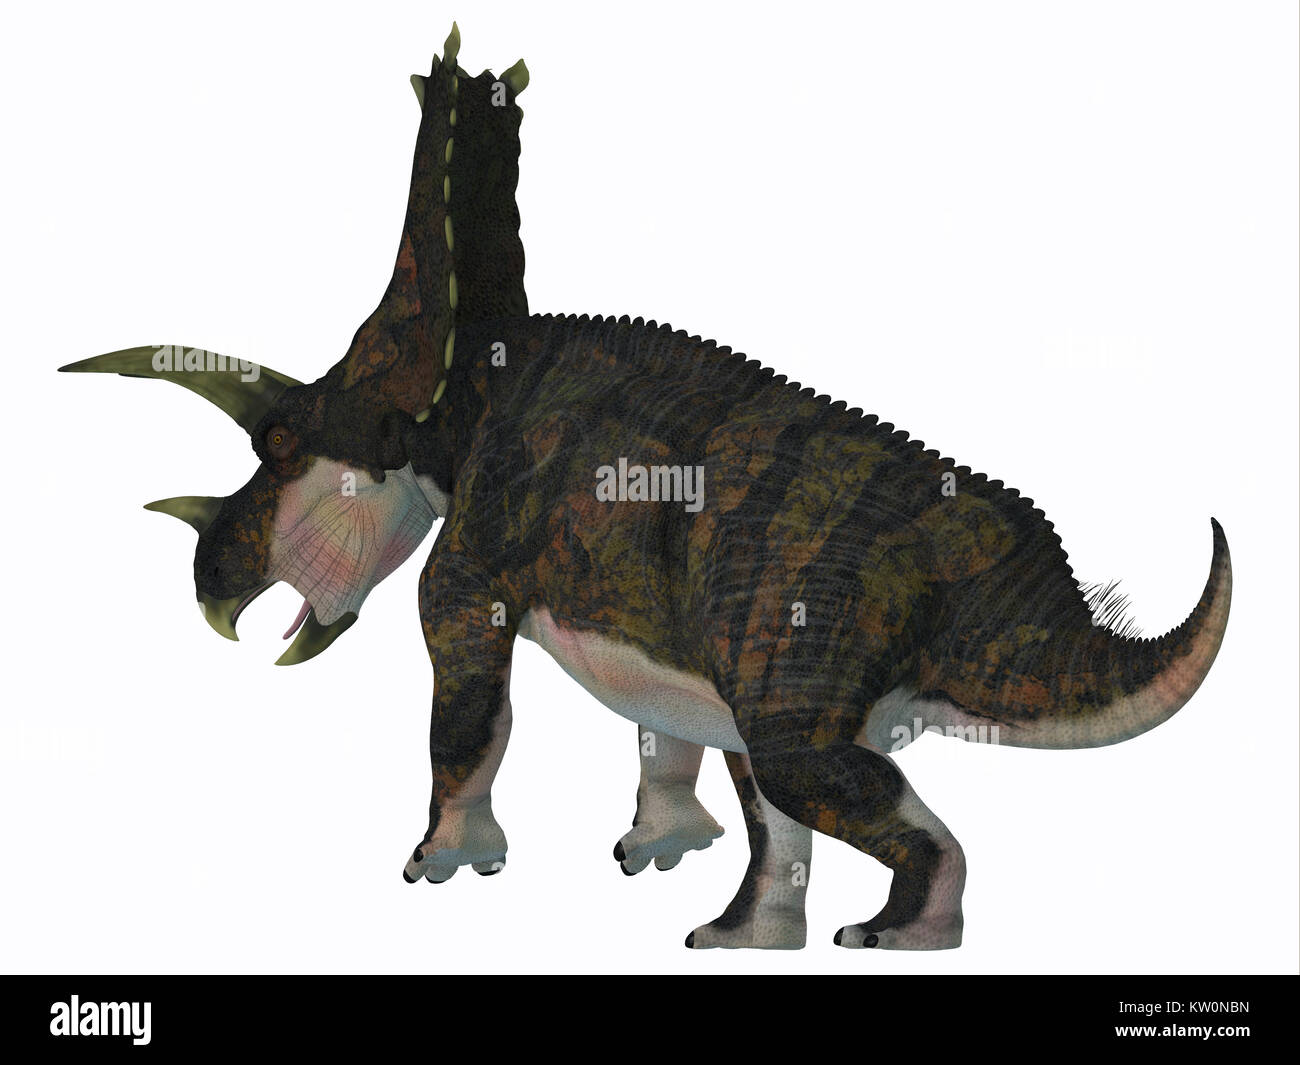 Bravoceratops Dinosaur Tail - Bravoceratops was a herbivorous ceratopsian dinosaur that lived in Texas, USA in the - Stock Image